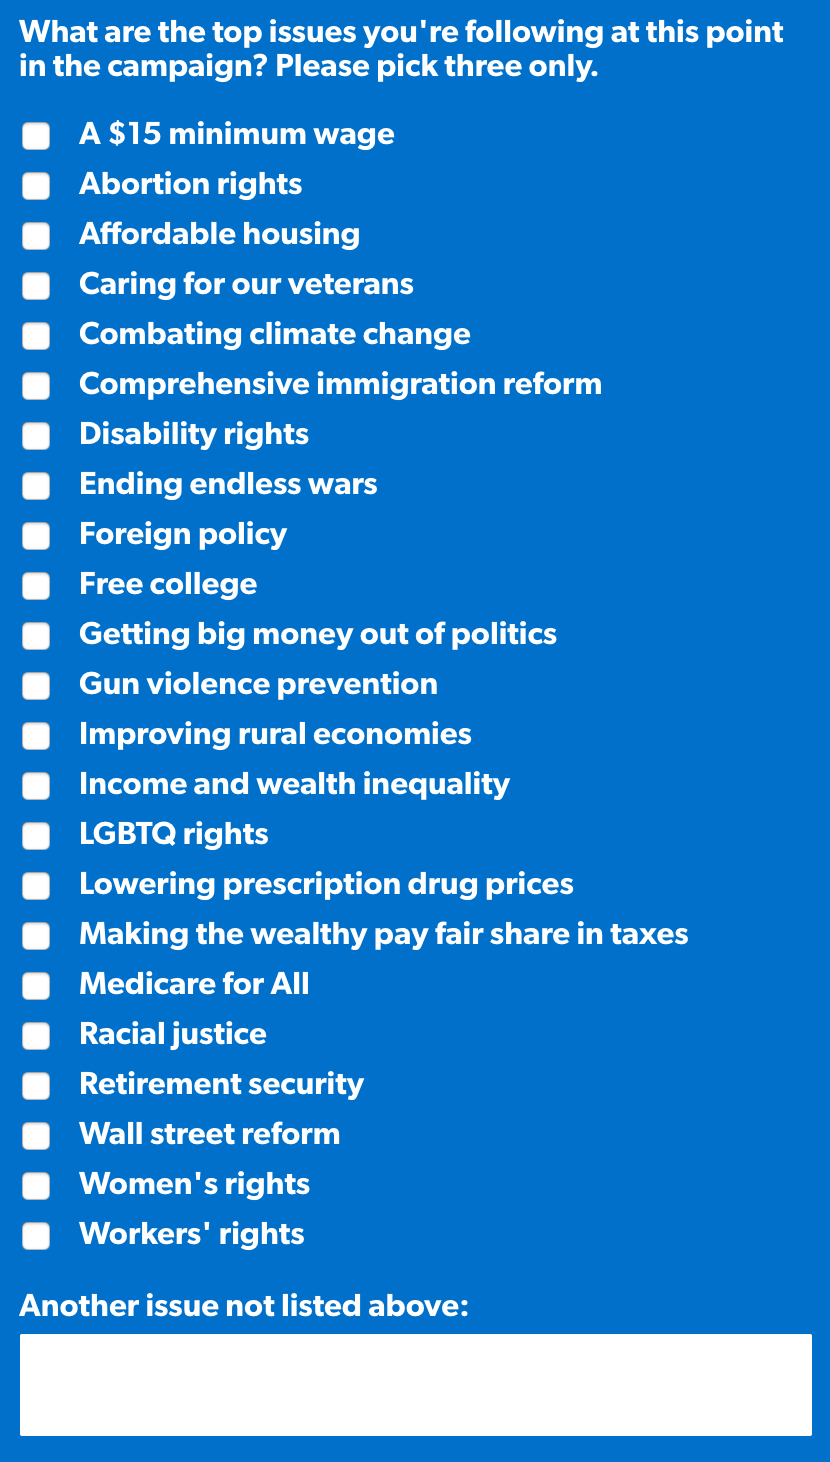 What are the top issues you're following at this point in the campaign? Please pick three only.